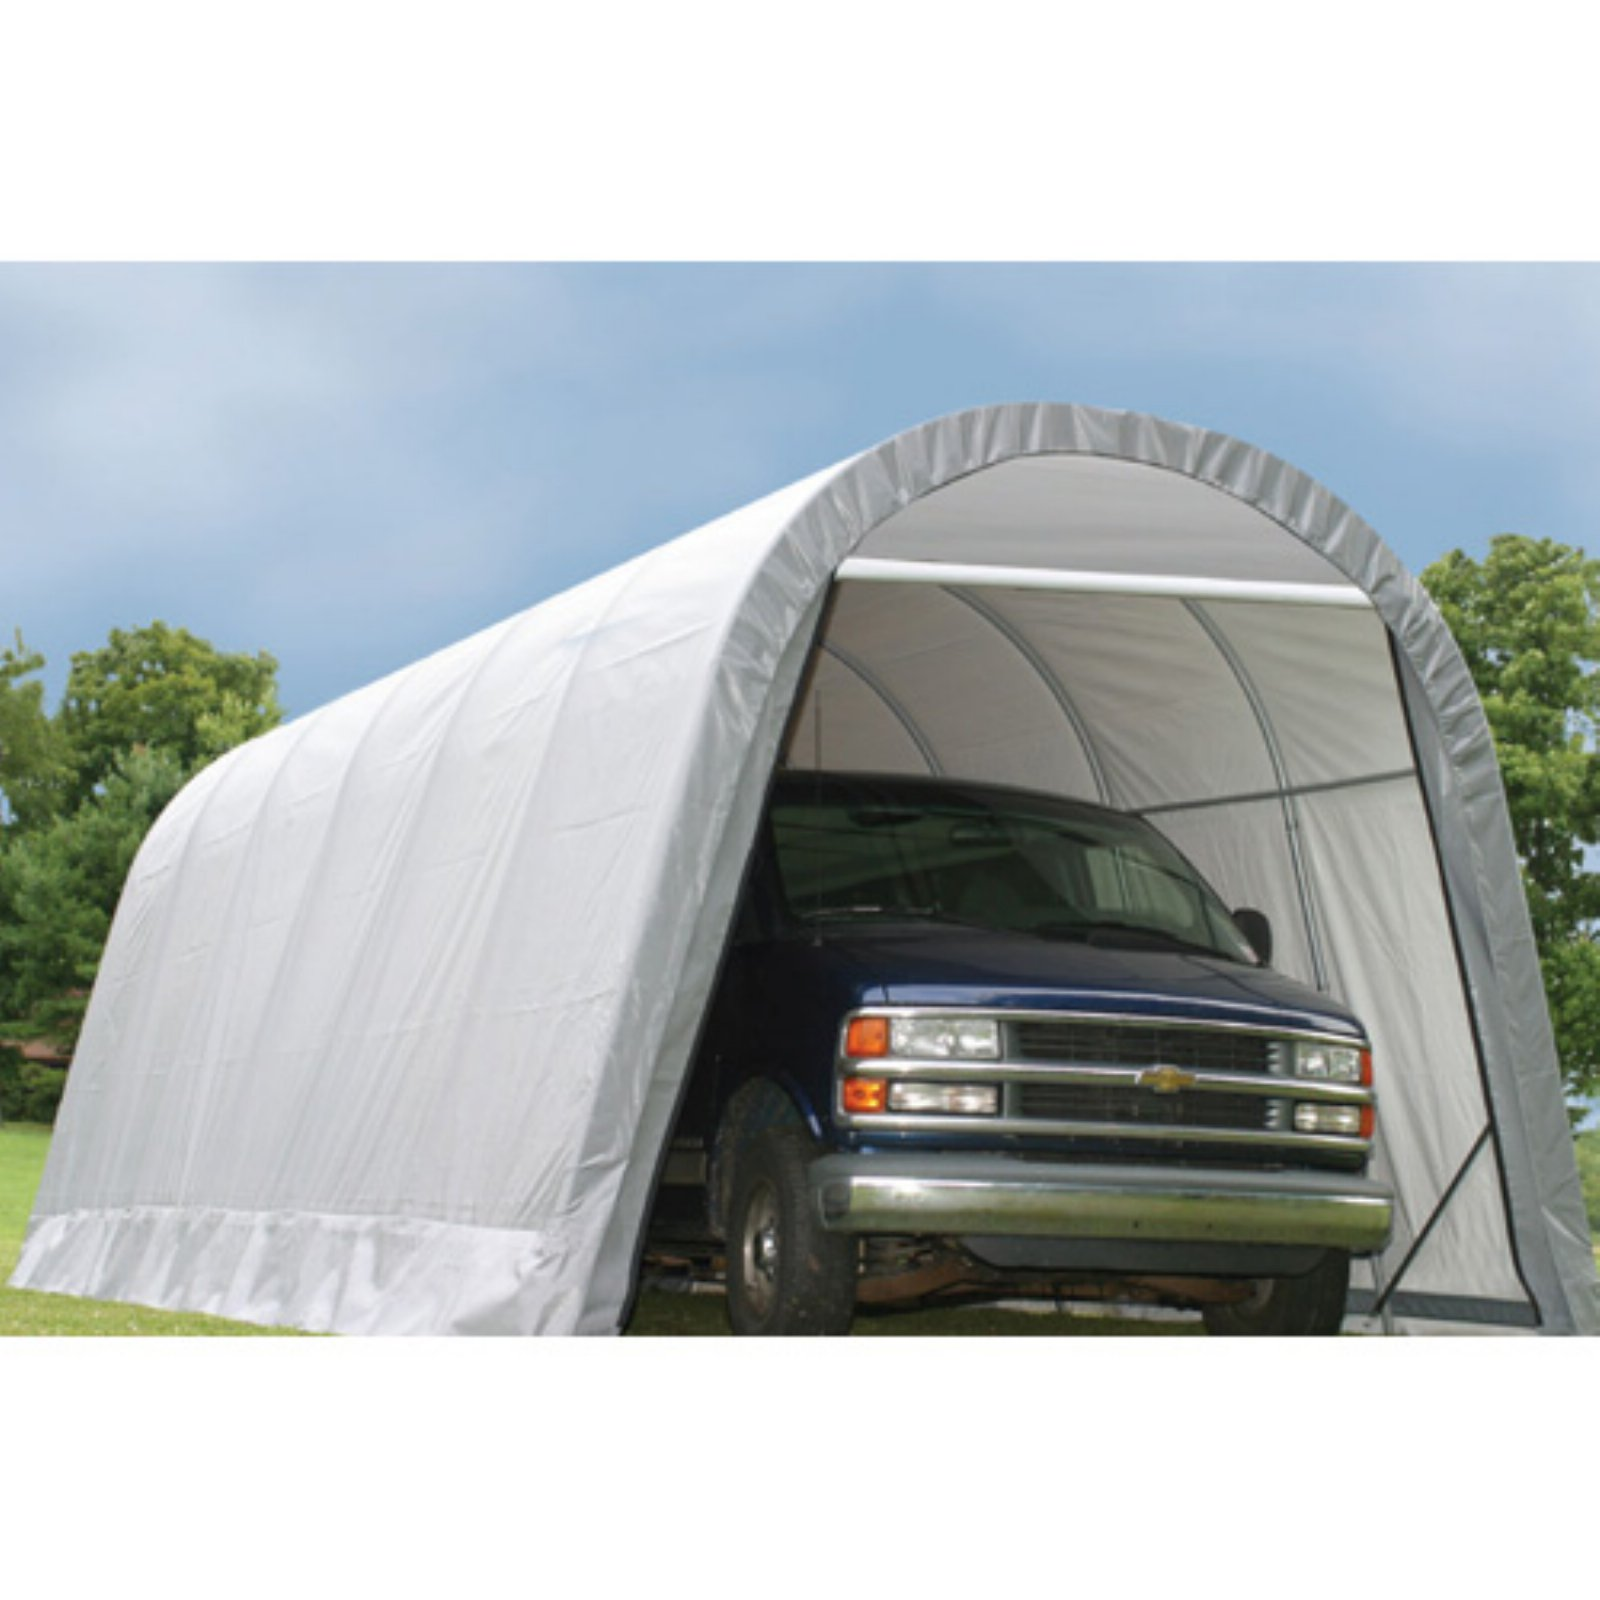 ShelterLogic 12 x 28 x 10 ft. Round Top Canopy Carport